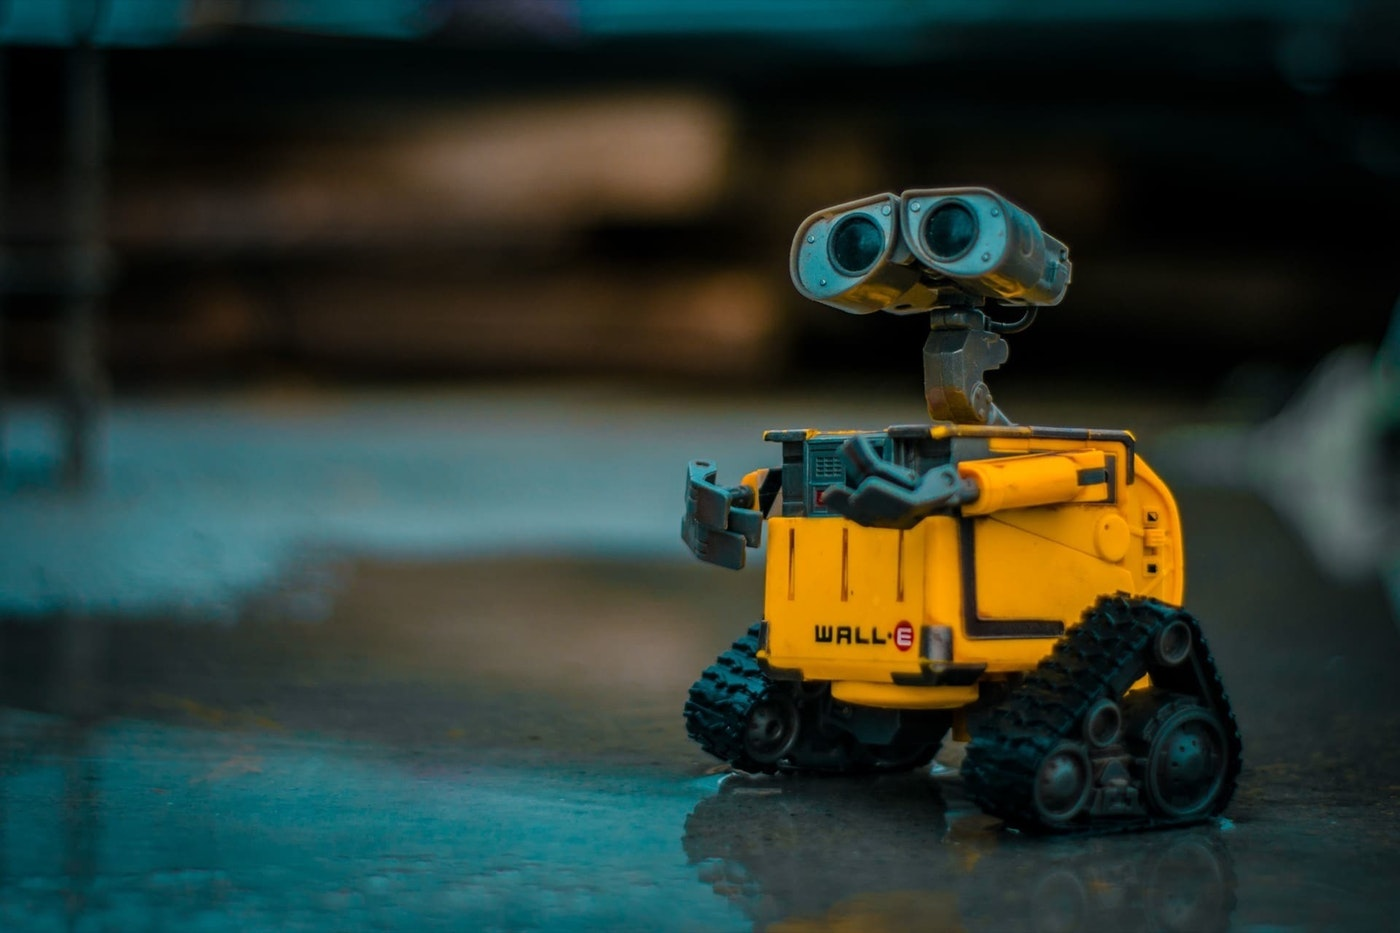 Want success and no stress? Build a robot army.